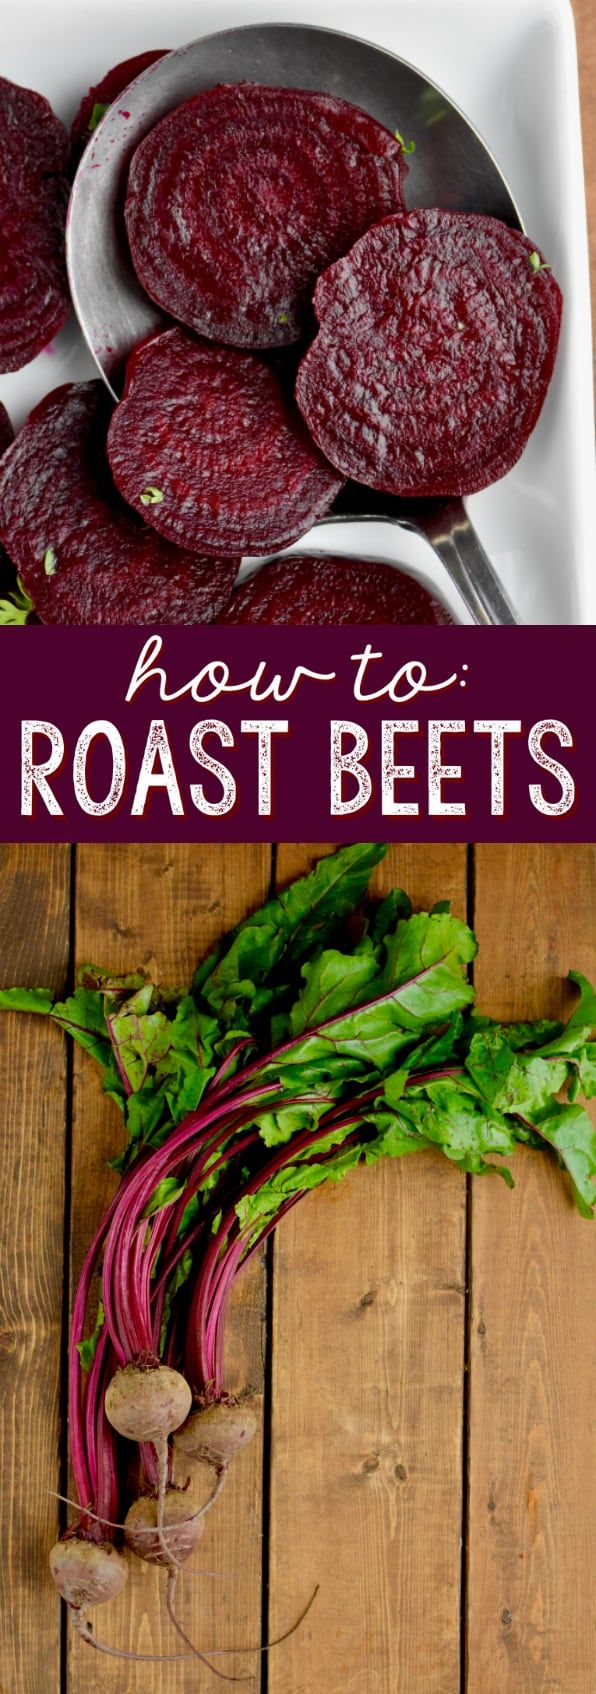 Grab a bunch of those gorgeous burgundy root vegetables and learn how to roast beets! Roasted beets are such an amazing addition to salads, a great side dish on their own, and they are so easy to prepare.